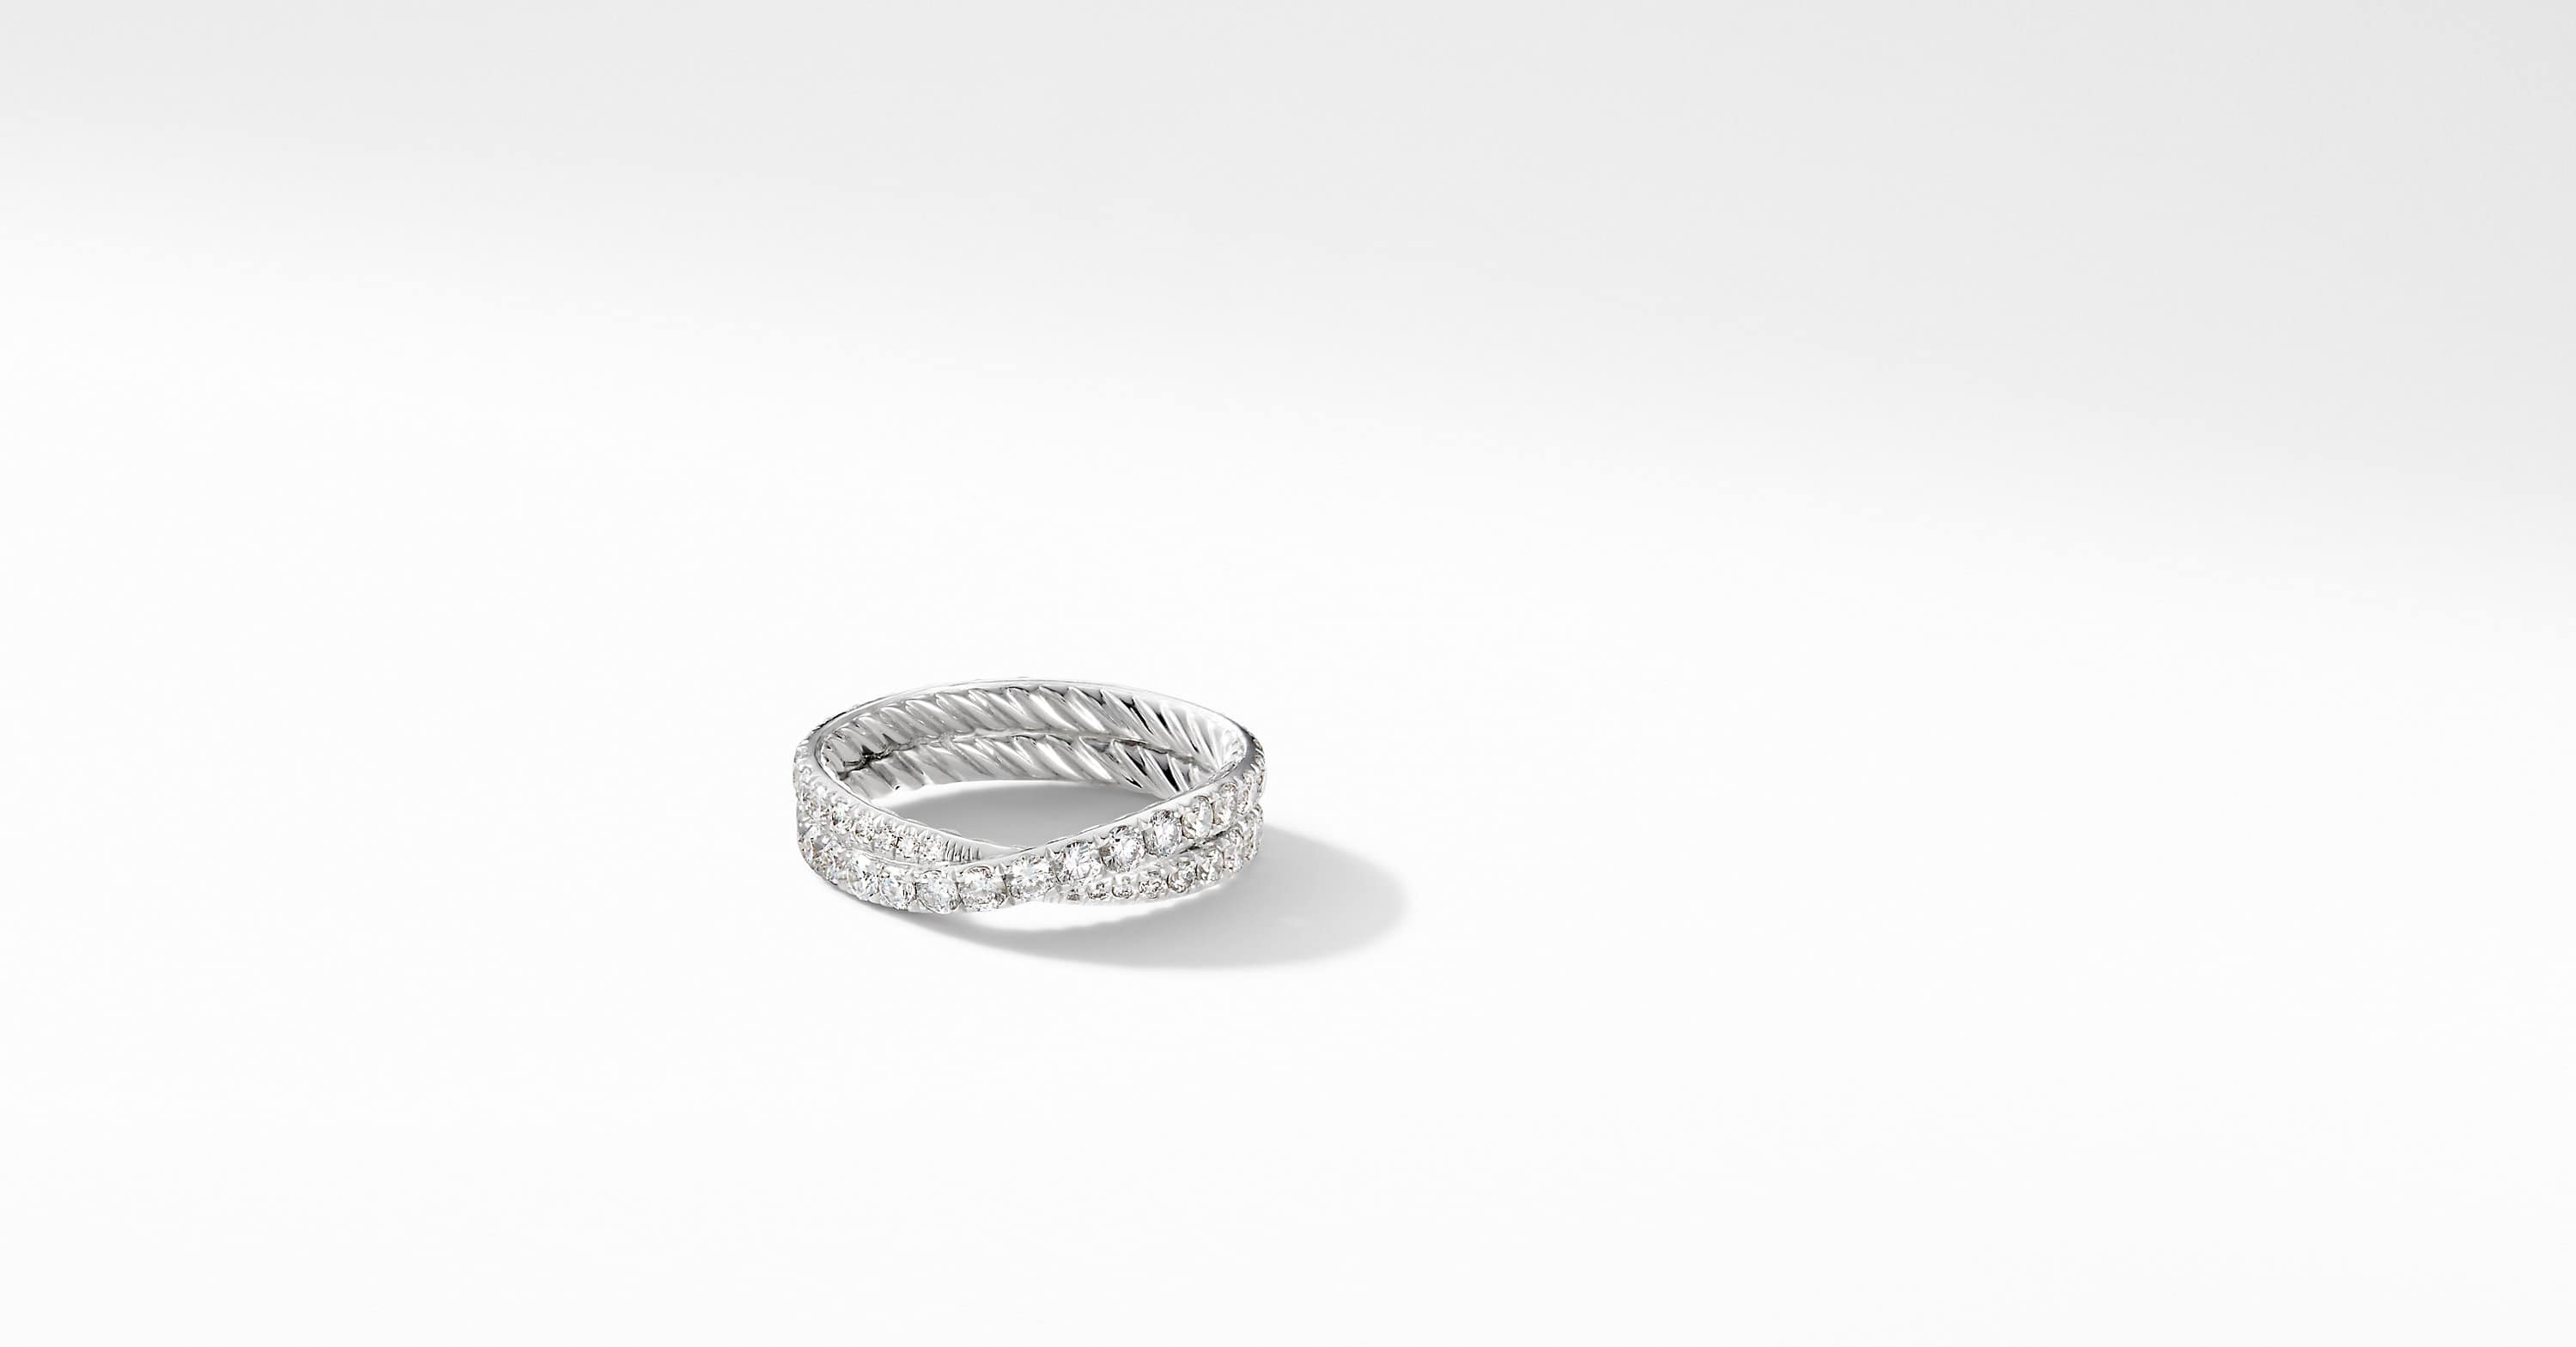 DY Crossover Wedding Band with Diamonds in Platinum, 5.2mm